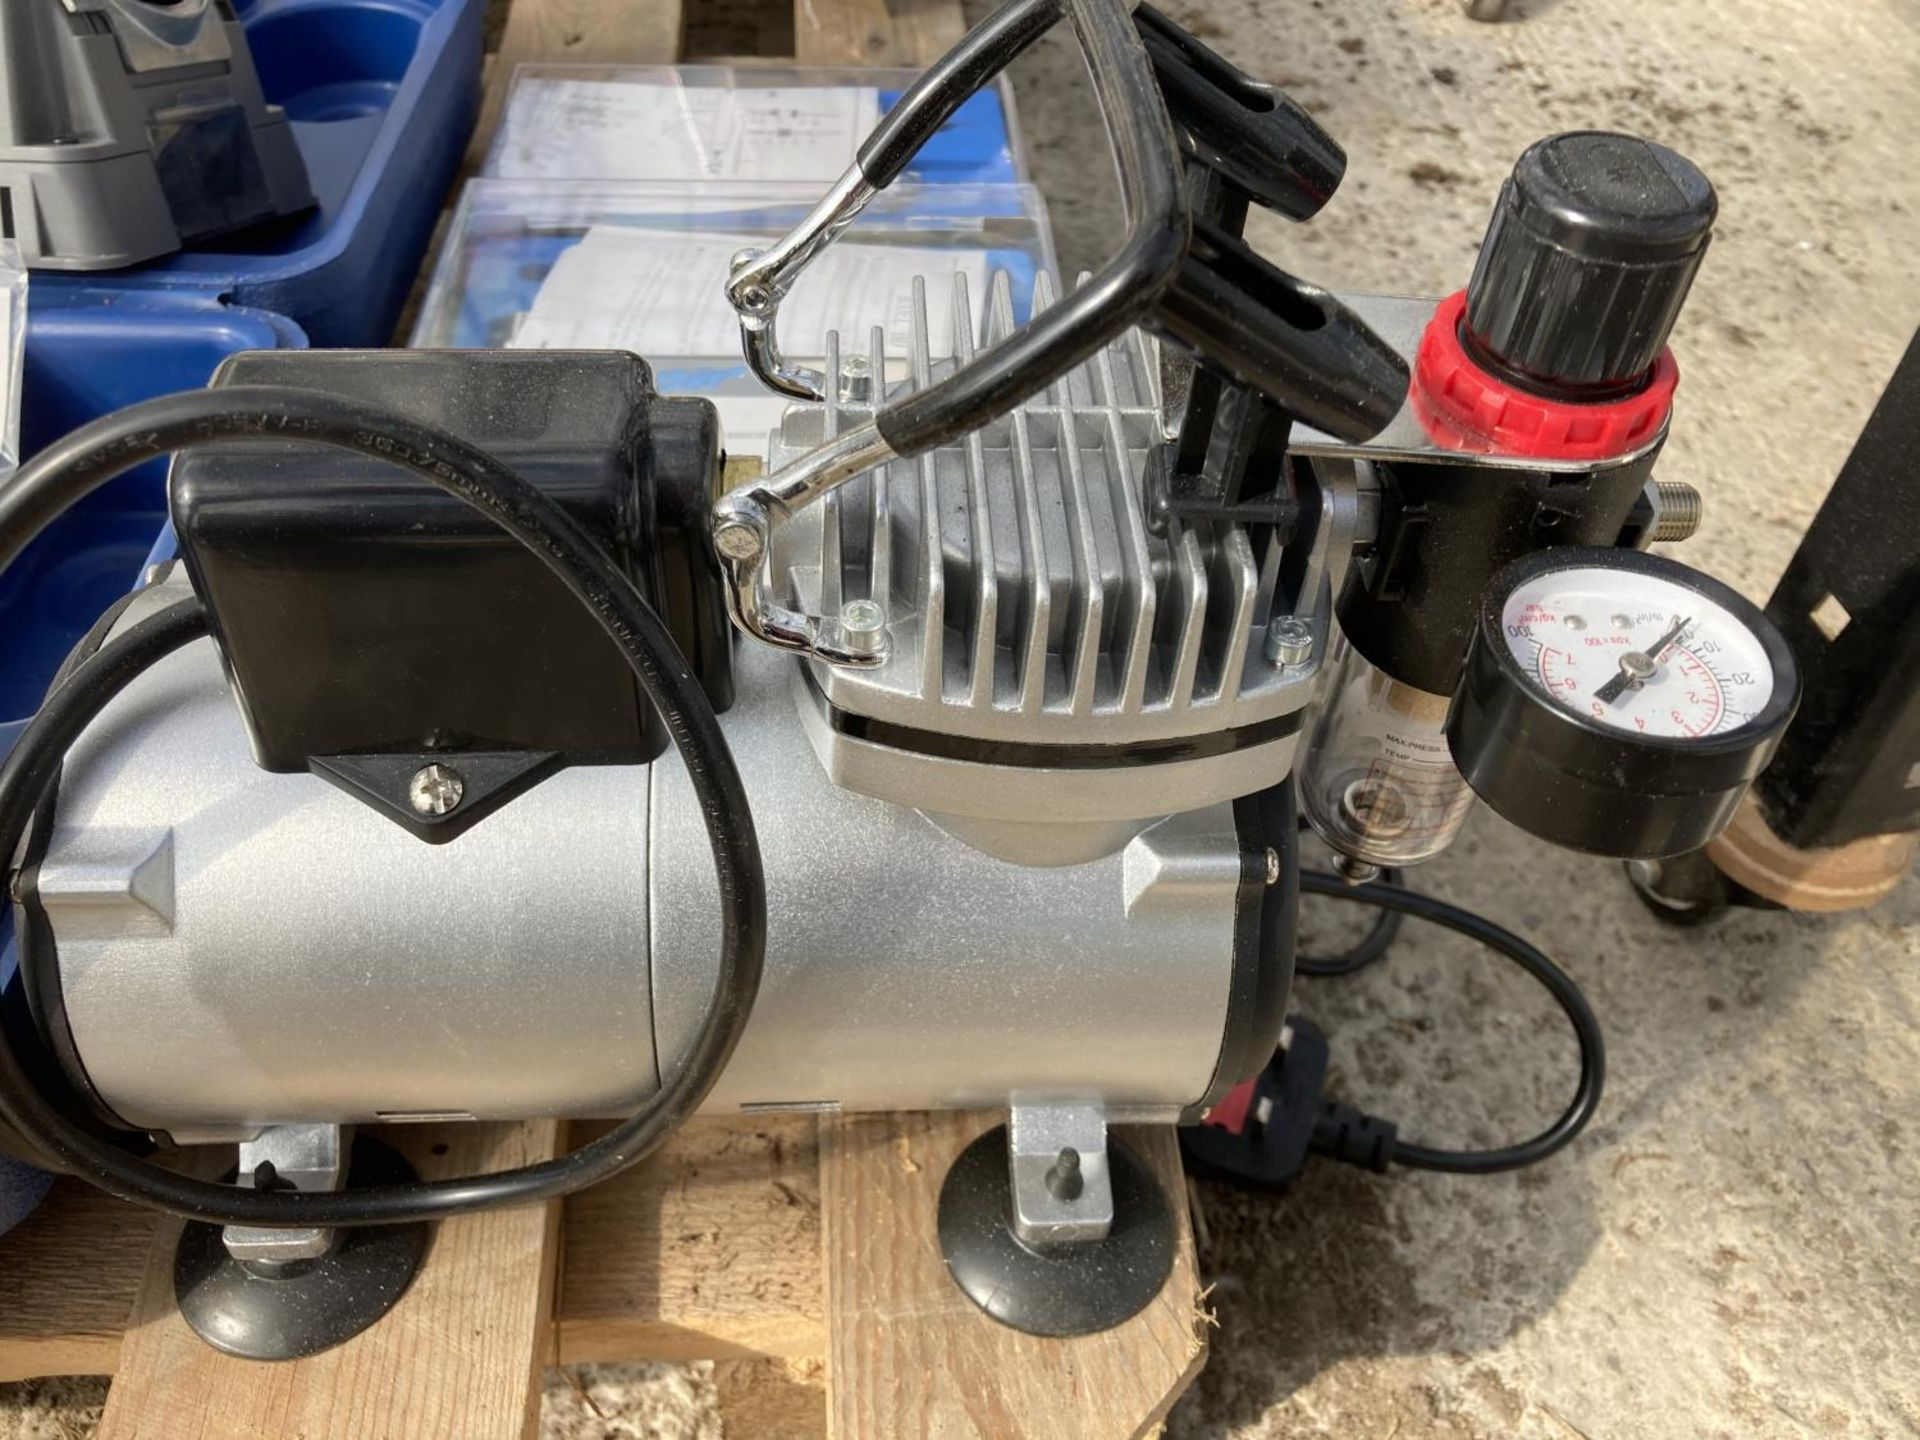 A DRILL DOCTOR 500 AND A MINI COMPRESSOR NO VAT - Image 4 of 8